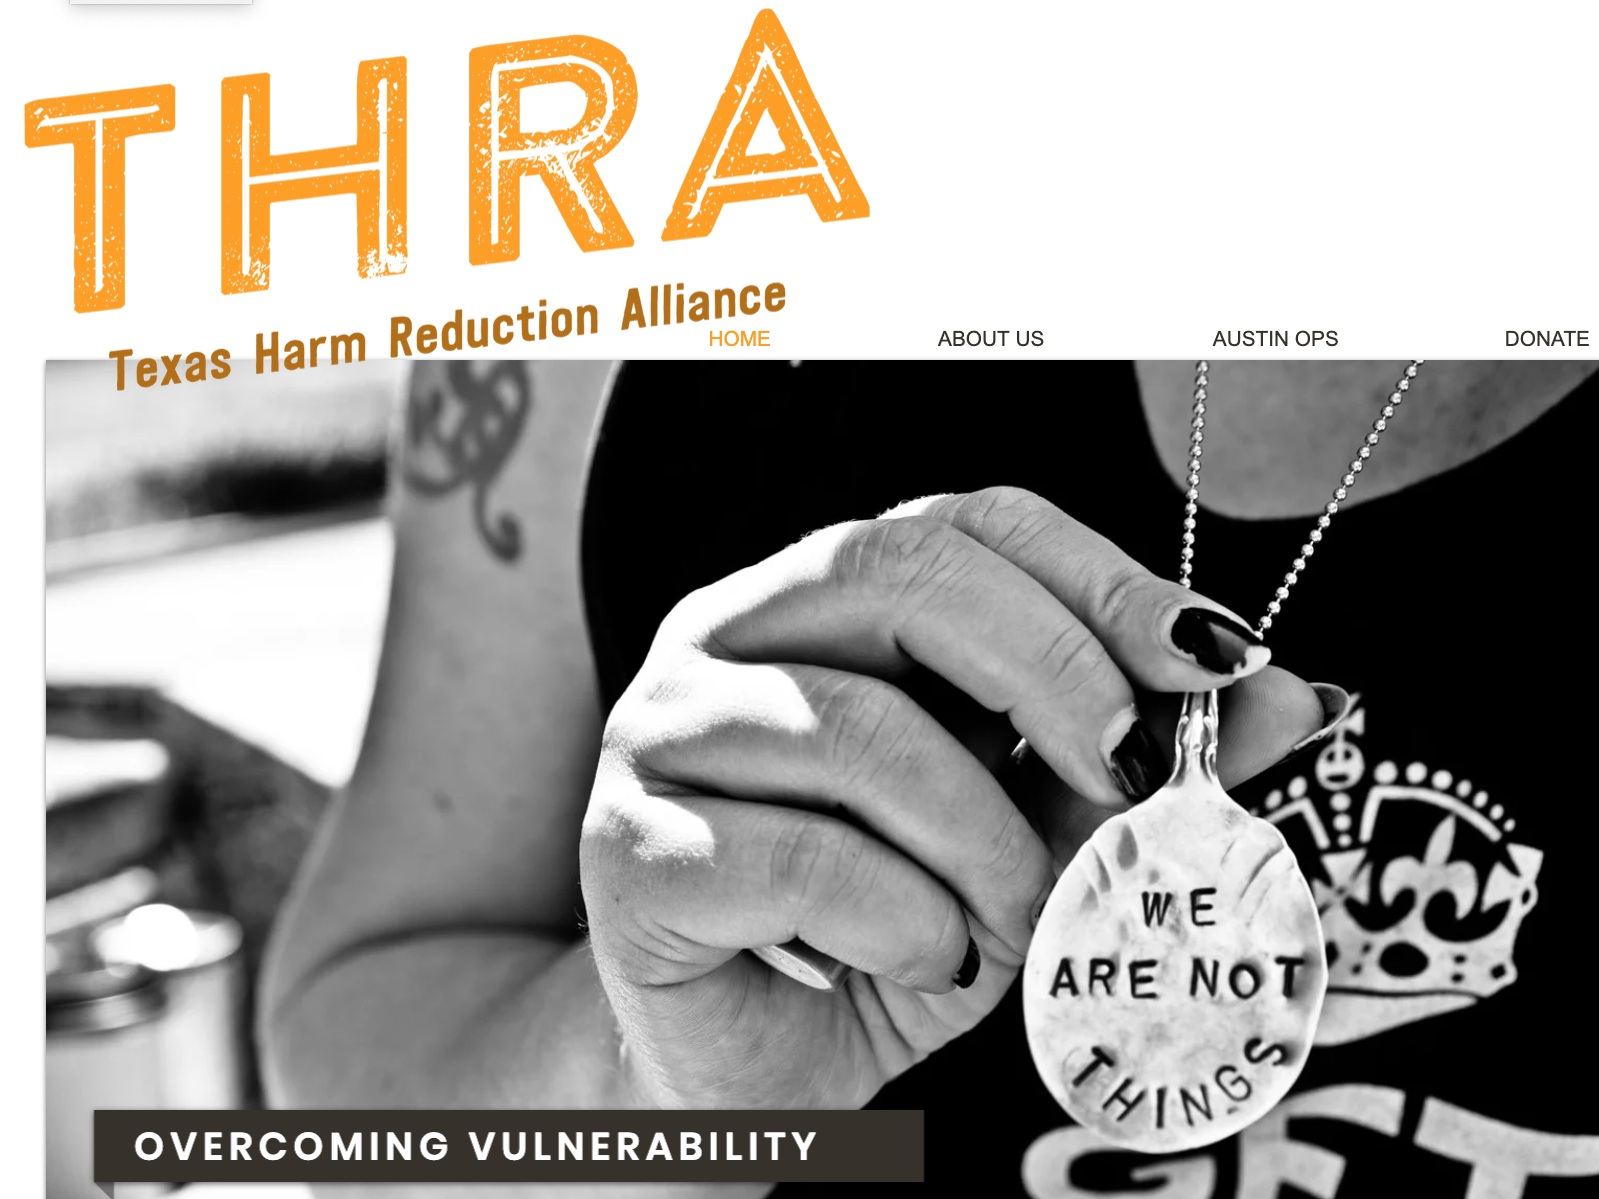 texas harm reduction alliance - THRA develops, supports, and promotes policies, practices, and programs that create positive change and reduce the harmful consequences of substance use and misuse in Texas. THRA is NEXT Naloxone's affiliate parter for the state of Texas.